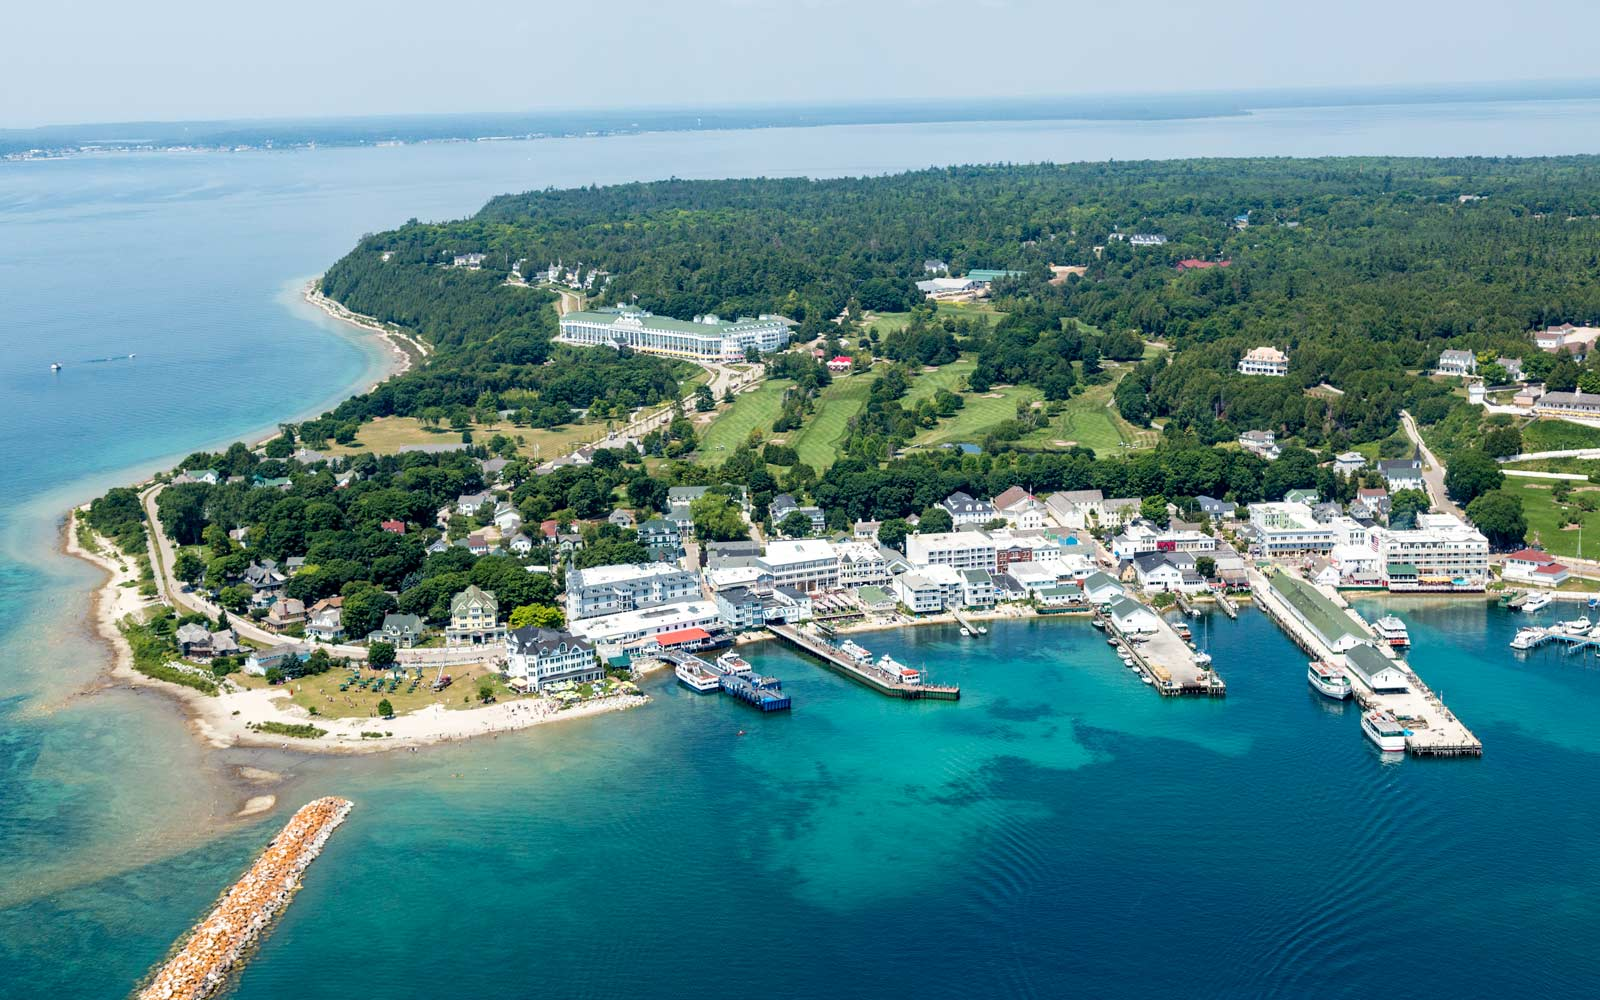 Mackinac Island, Michigan